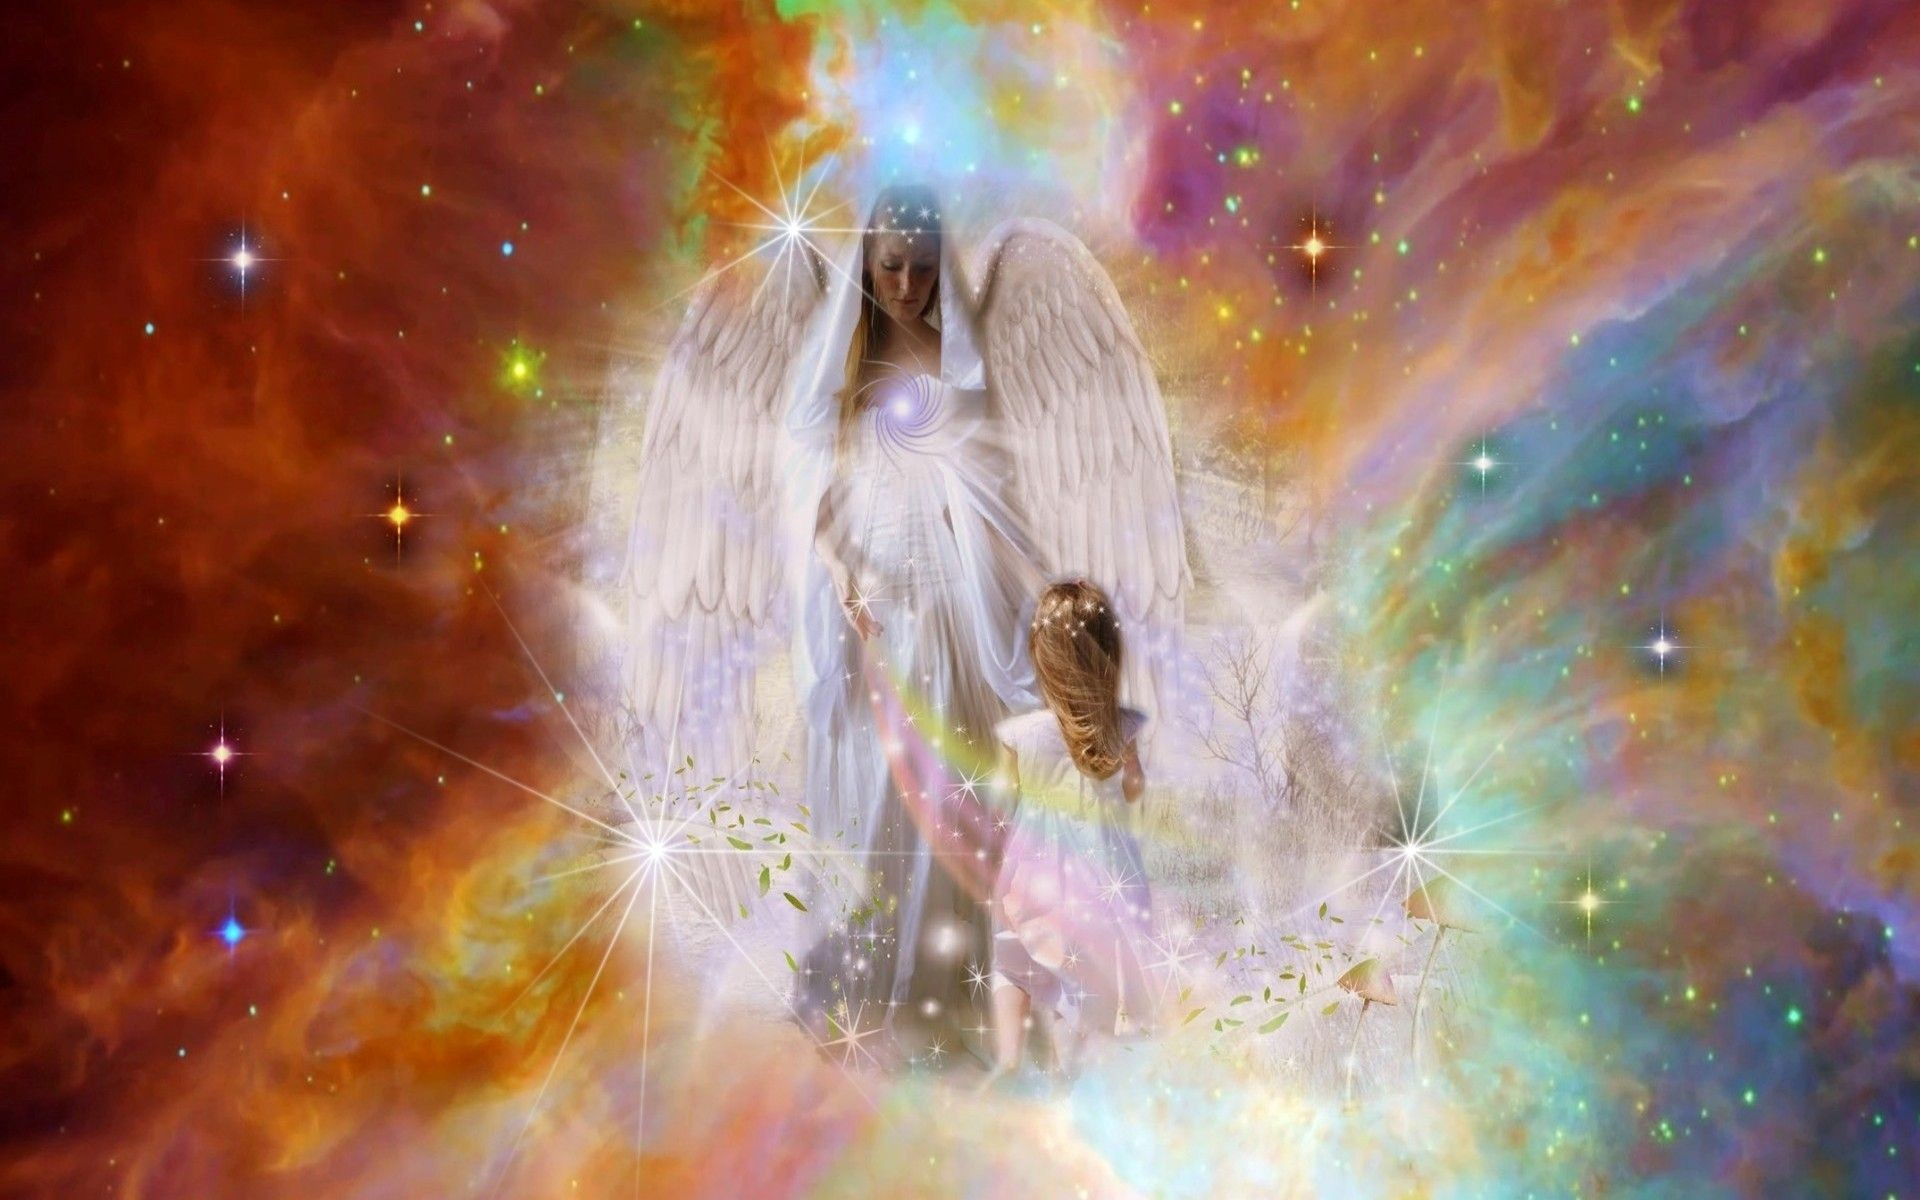 Angel wallpaper ·① Download free full HD backgrounds for ...